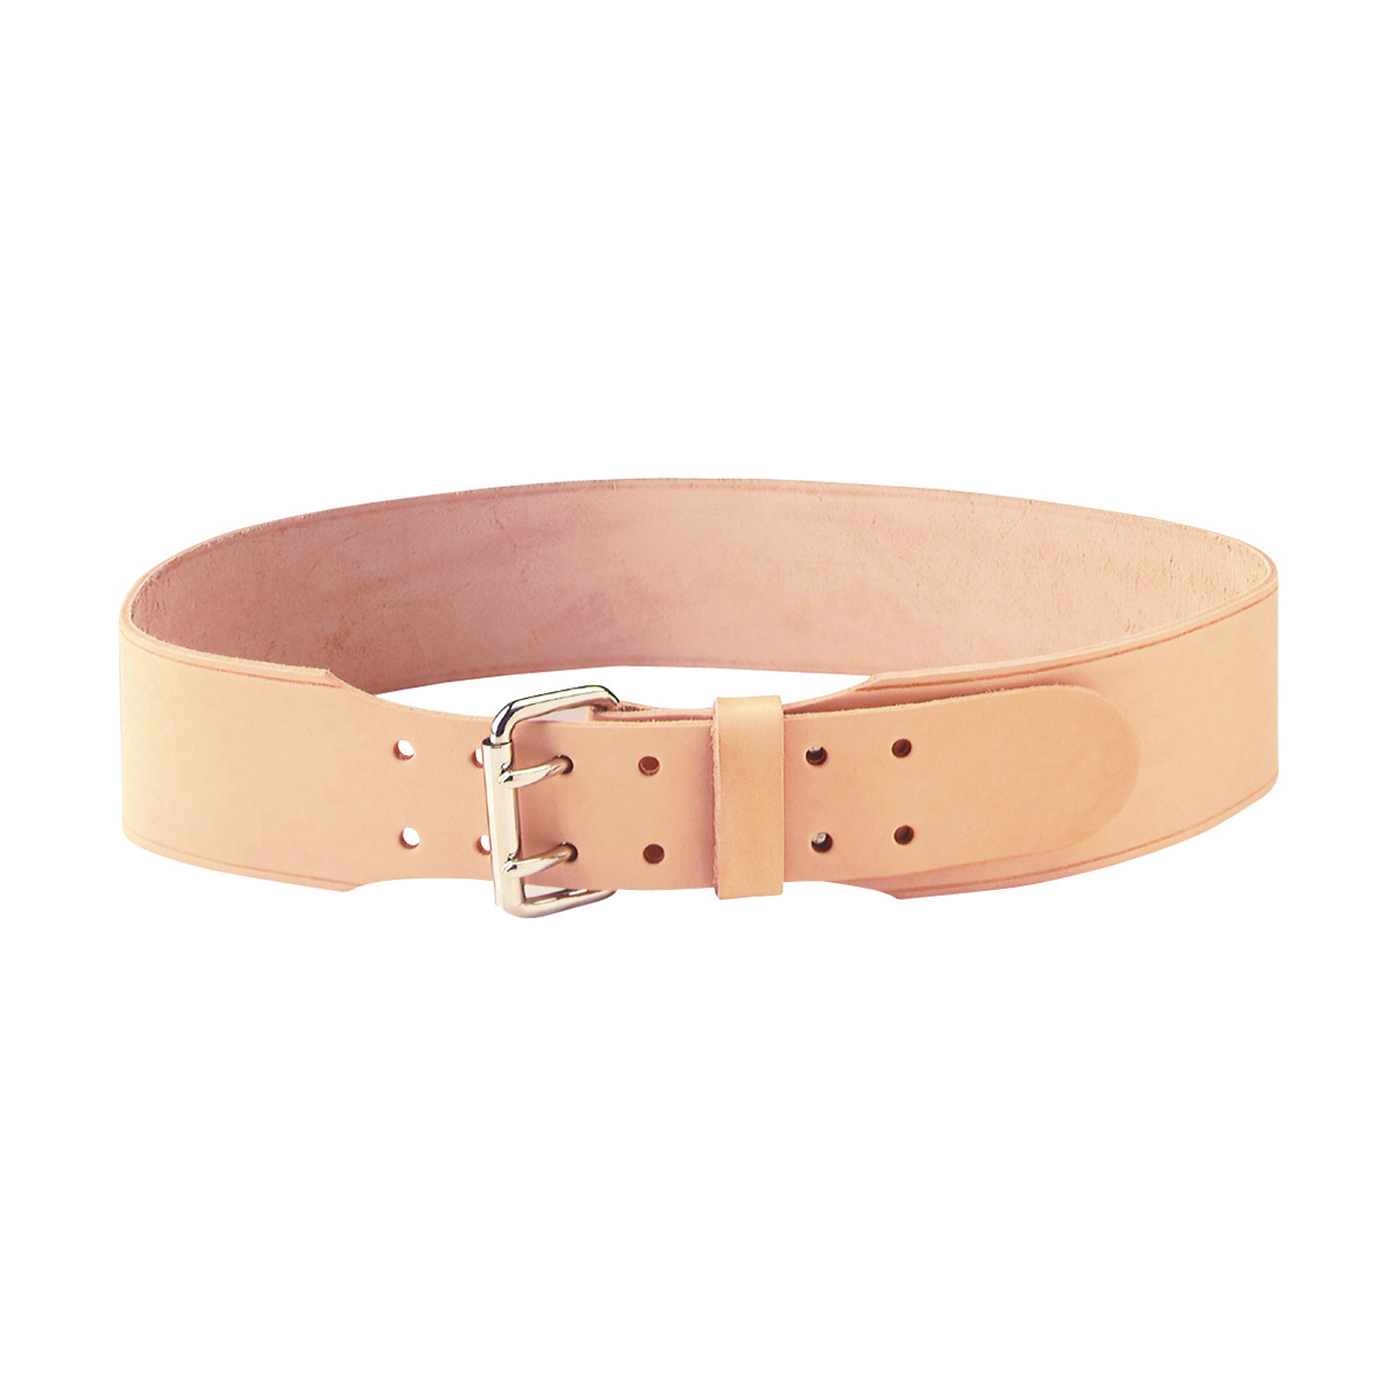 Picture of CLC Tool Works 962L Work Belt, 41 to 46 in Waist, Leather, Tan